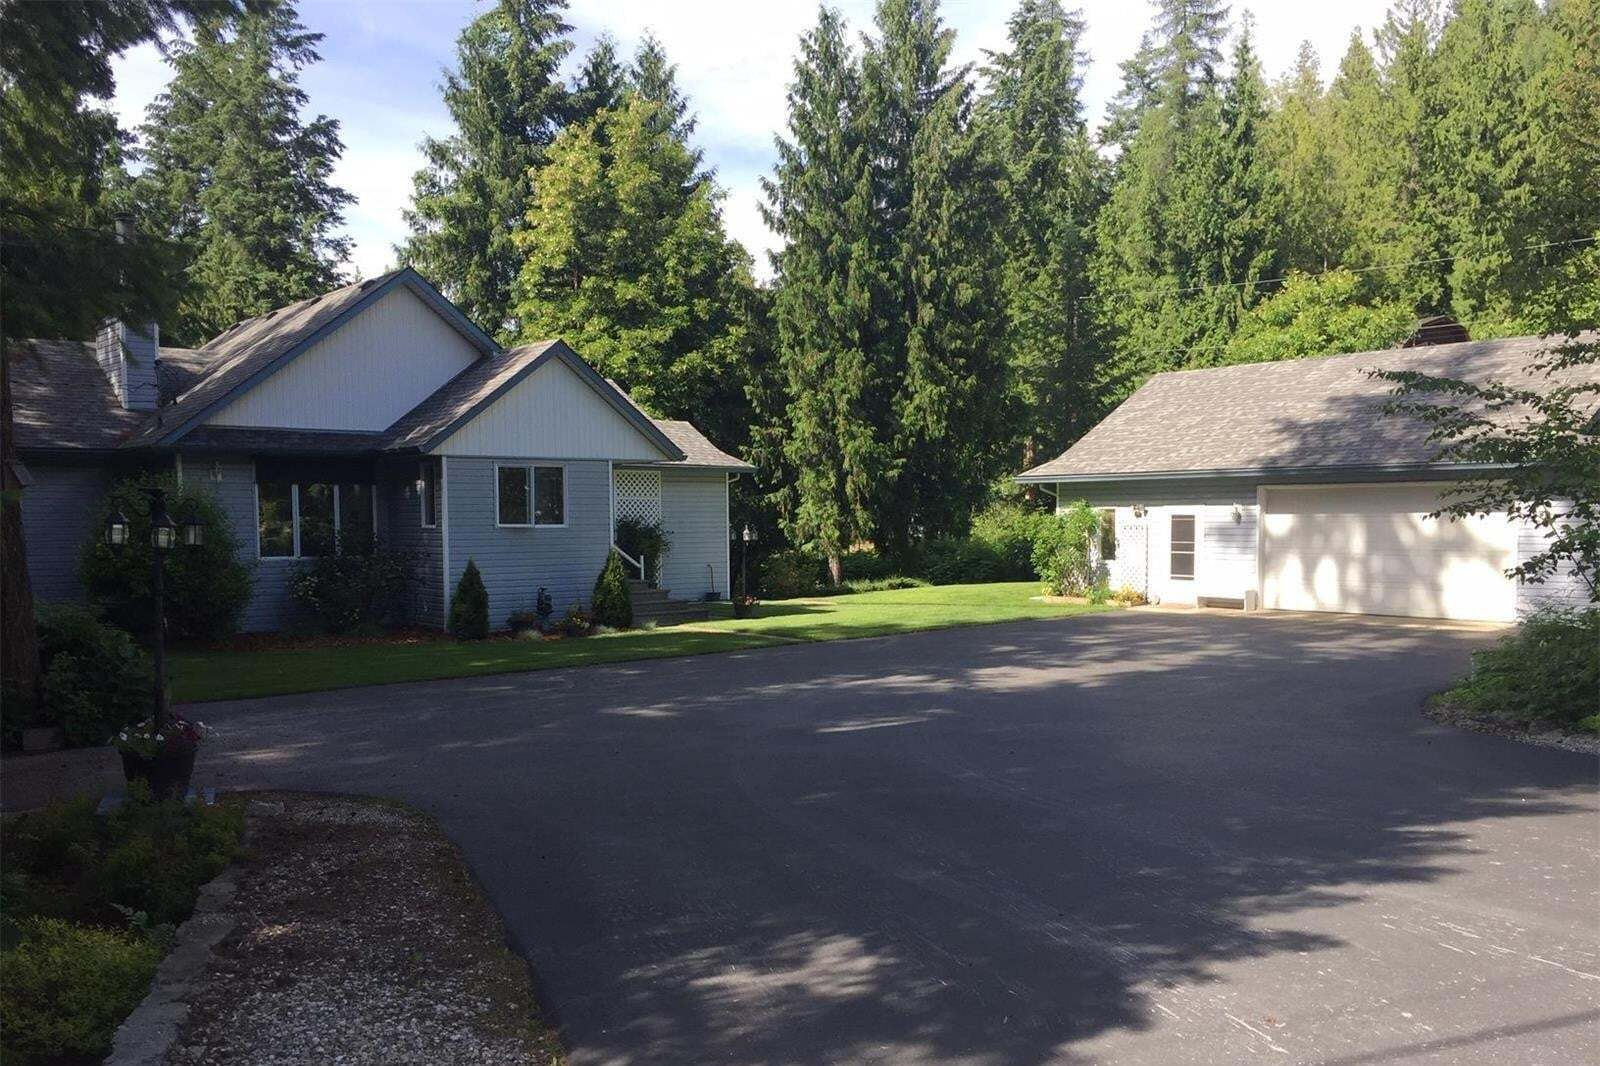 House for sale at 587 Hunt Rd Swansea Point British Columbia - MLS: 10208018